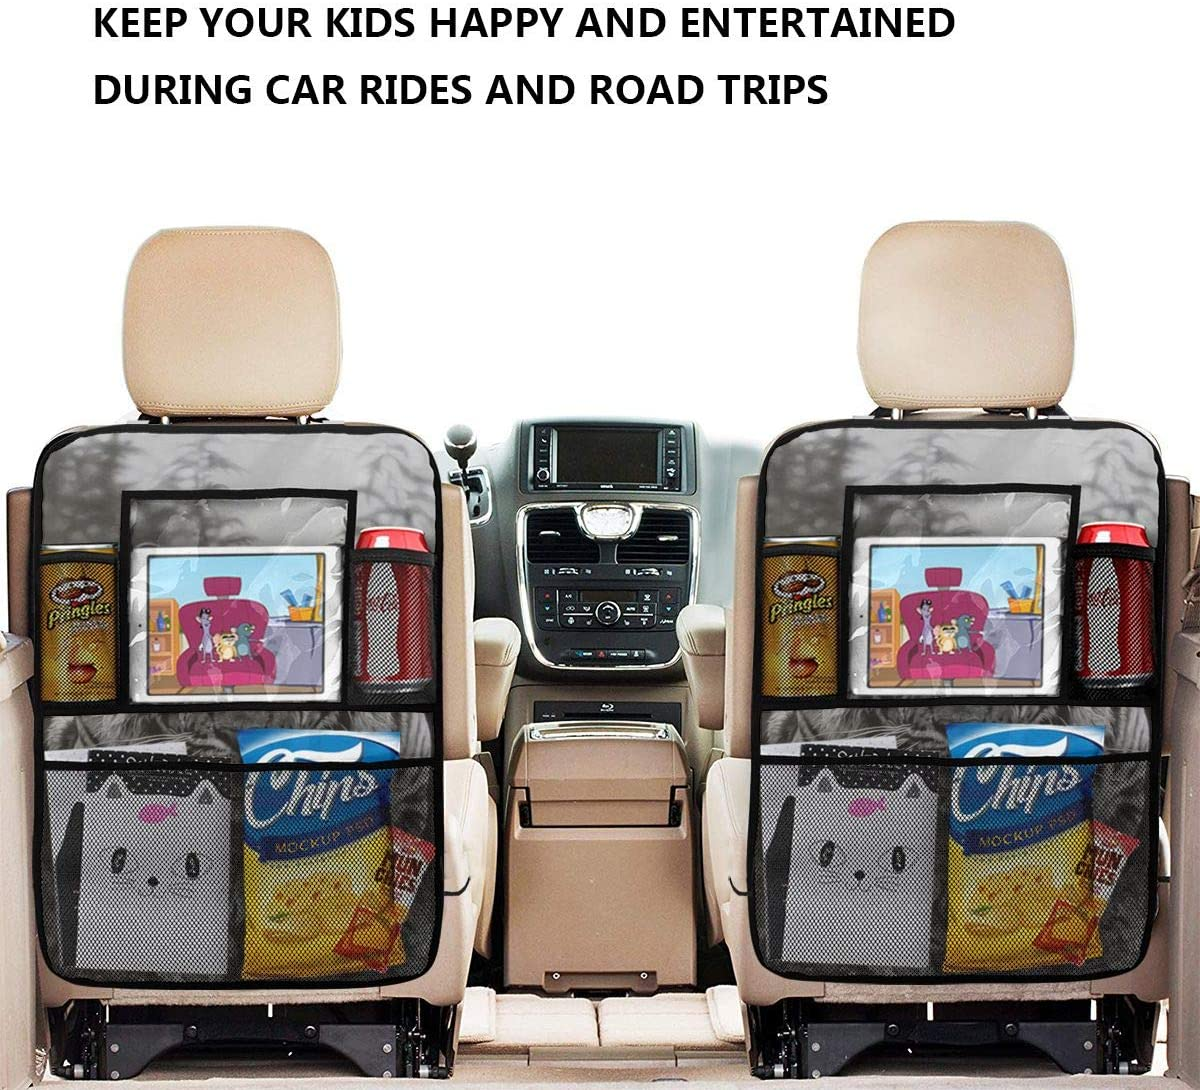 TPSXXY-CO Red Leopard Zebra Custom Animal Car Seat Back Organizer Tablet Holder Storage Pockets Backseat Protectors Kick Mats for Toy Bottle Book Drink Travel Accessories 2 Pack